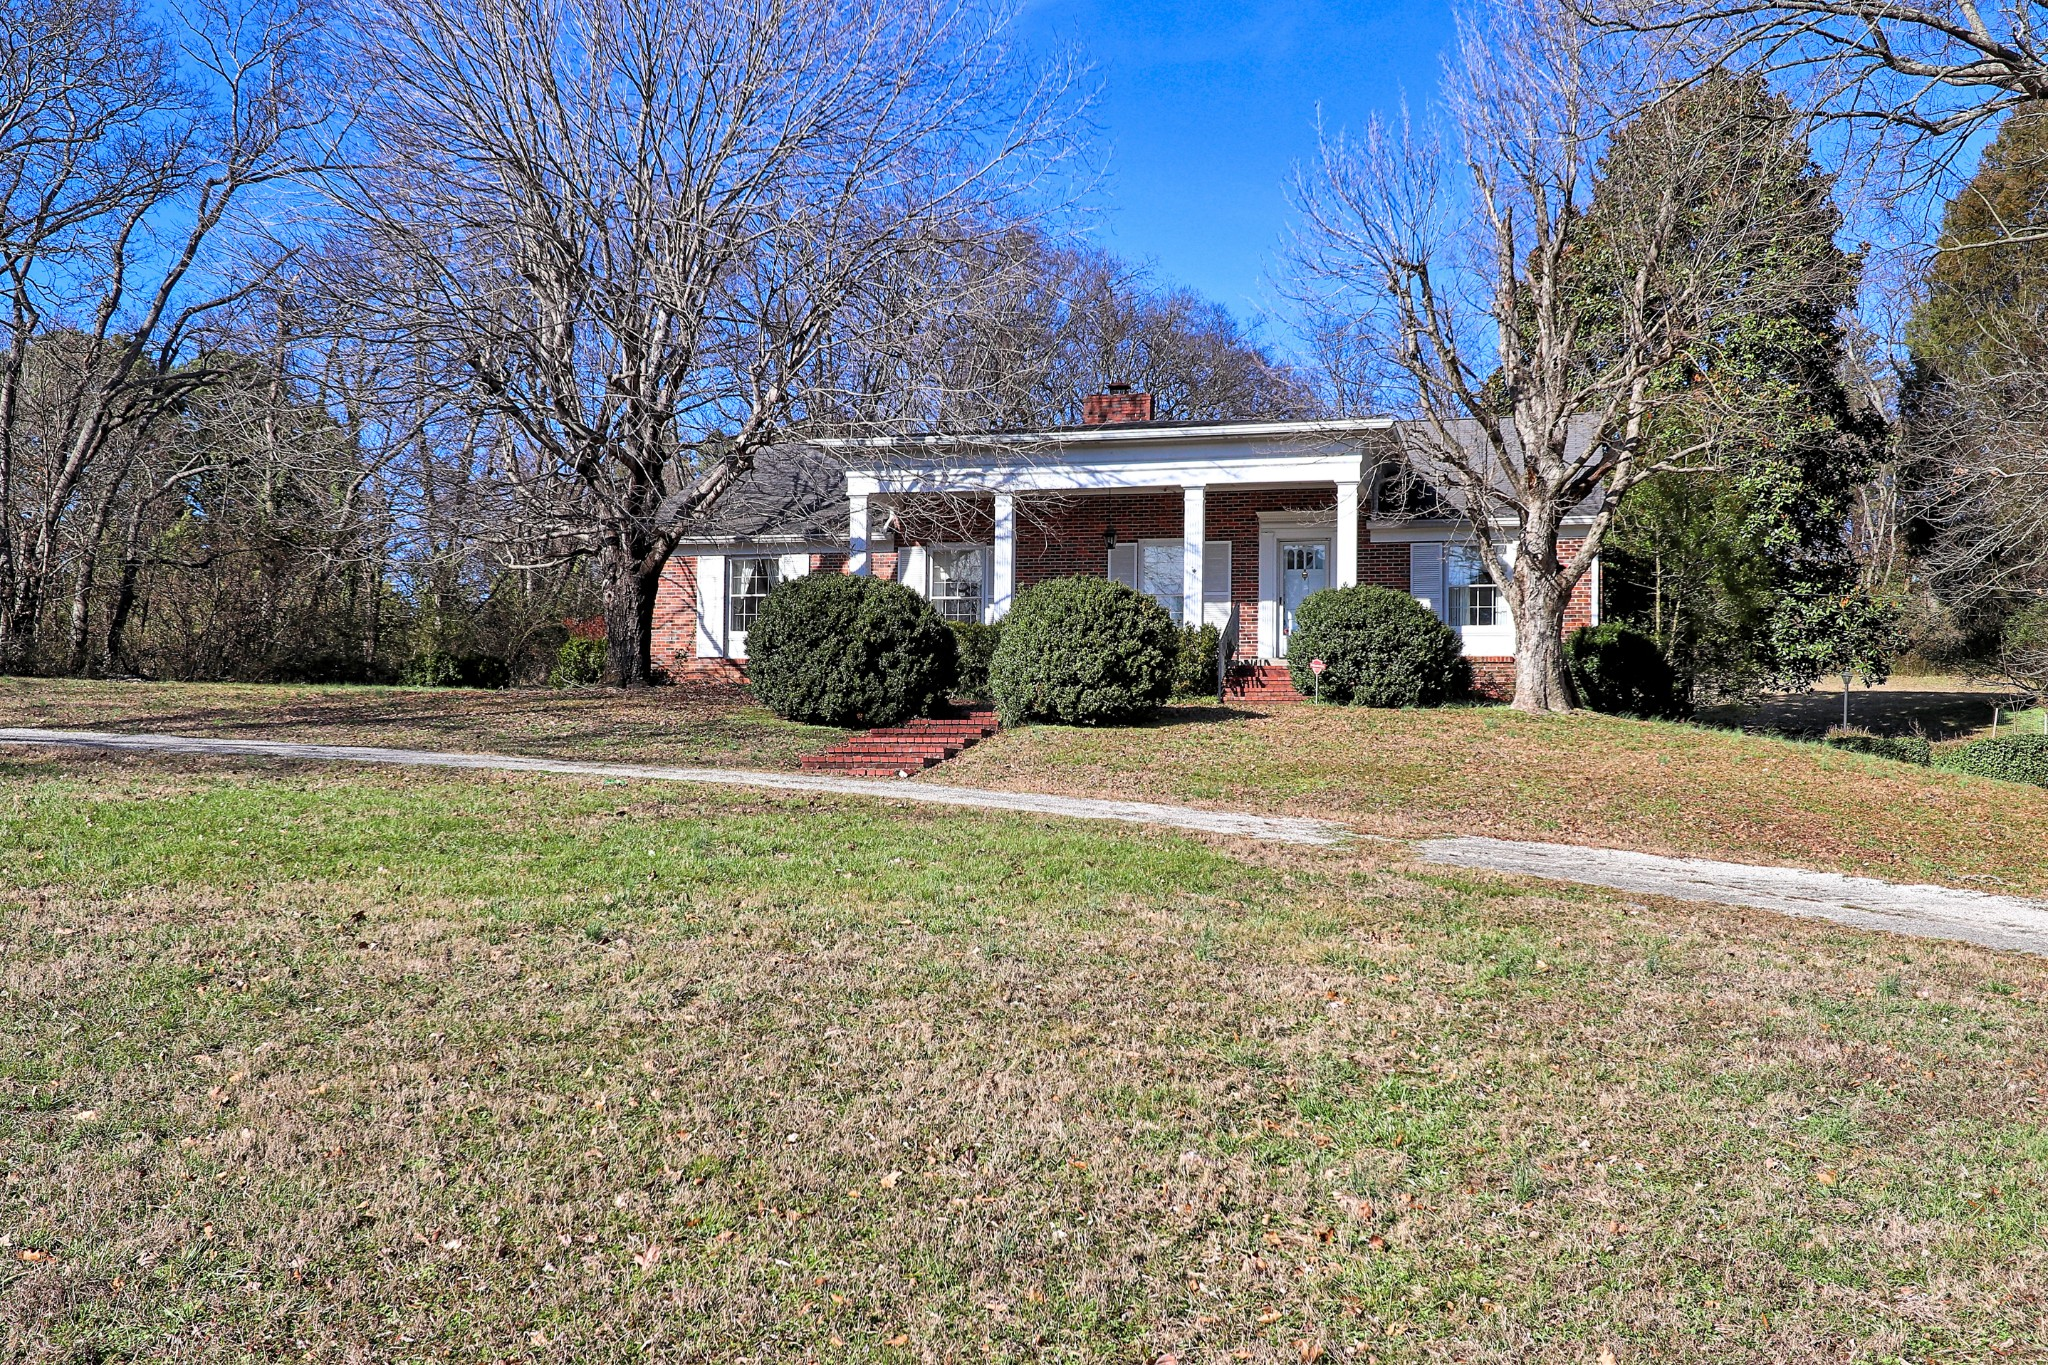 Classic, well-maintained home on 2.2 acres. 2 large dens + renovated basement. Neutral paint colors, spacious rooms, timeless fixtures & oversized front & back yard perfect for the person who wants to live in town & still have their space!  Back patio and front porches perfect for warmer weather on the way! Newer HVAC & renovated basement w/separate entrance.